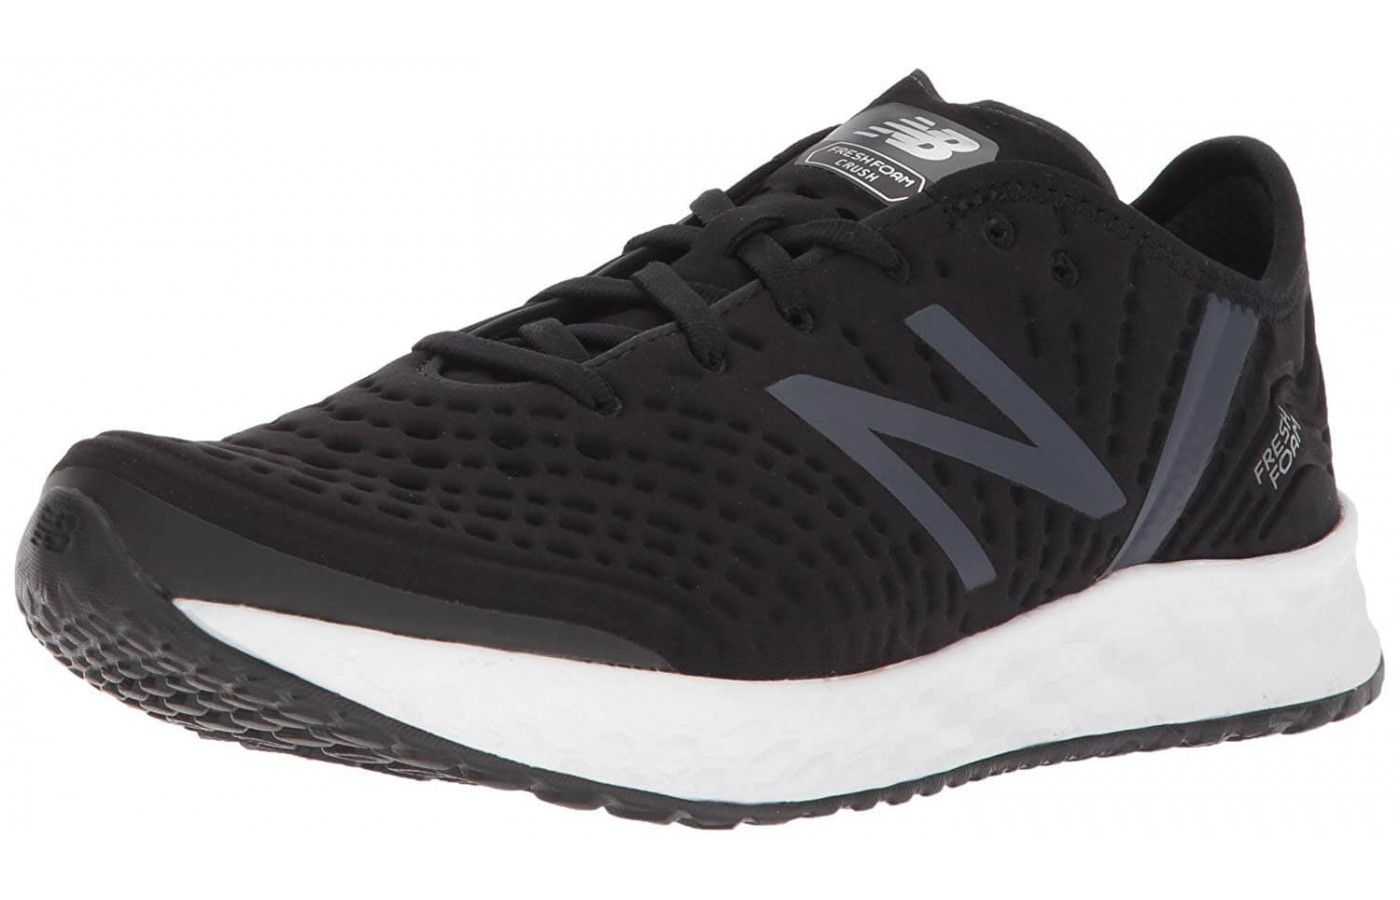 5e77acd41a New Balance Fresh Foam Crush